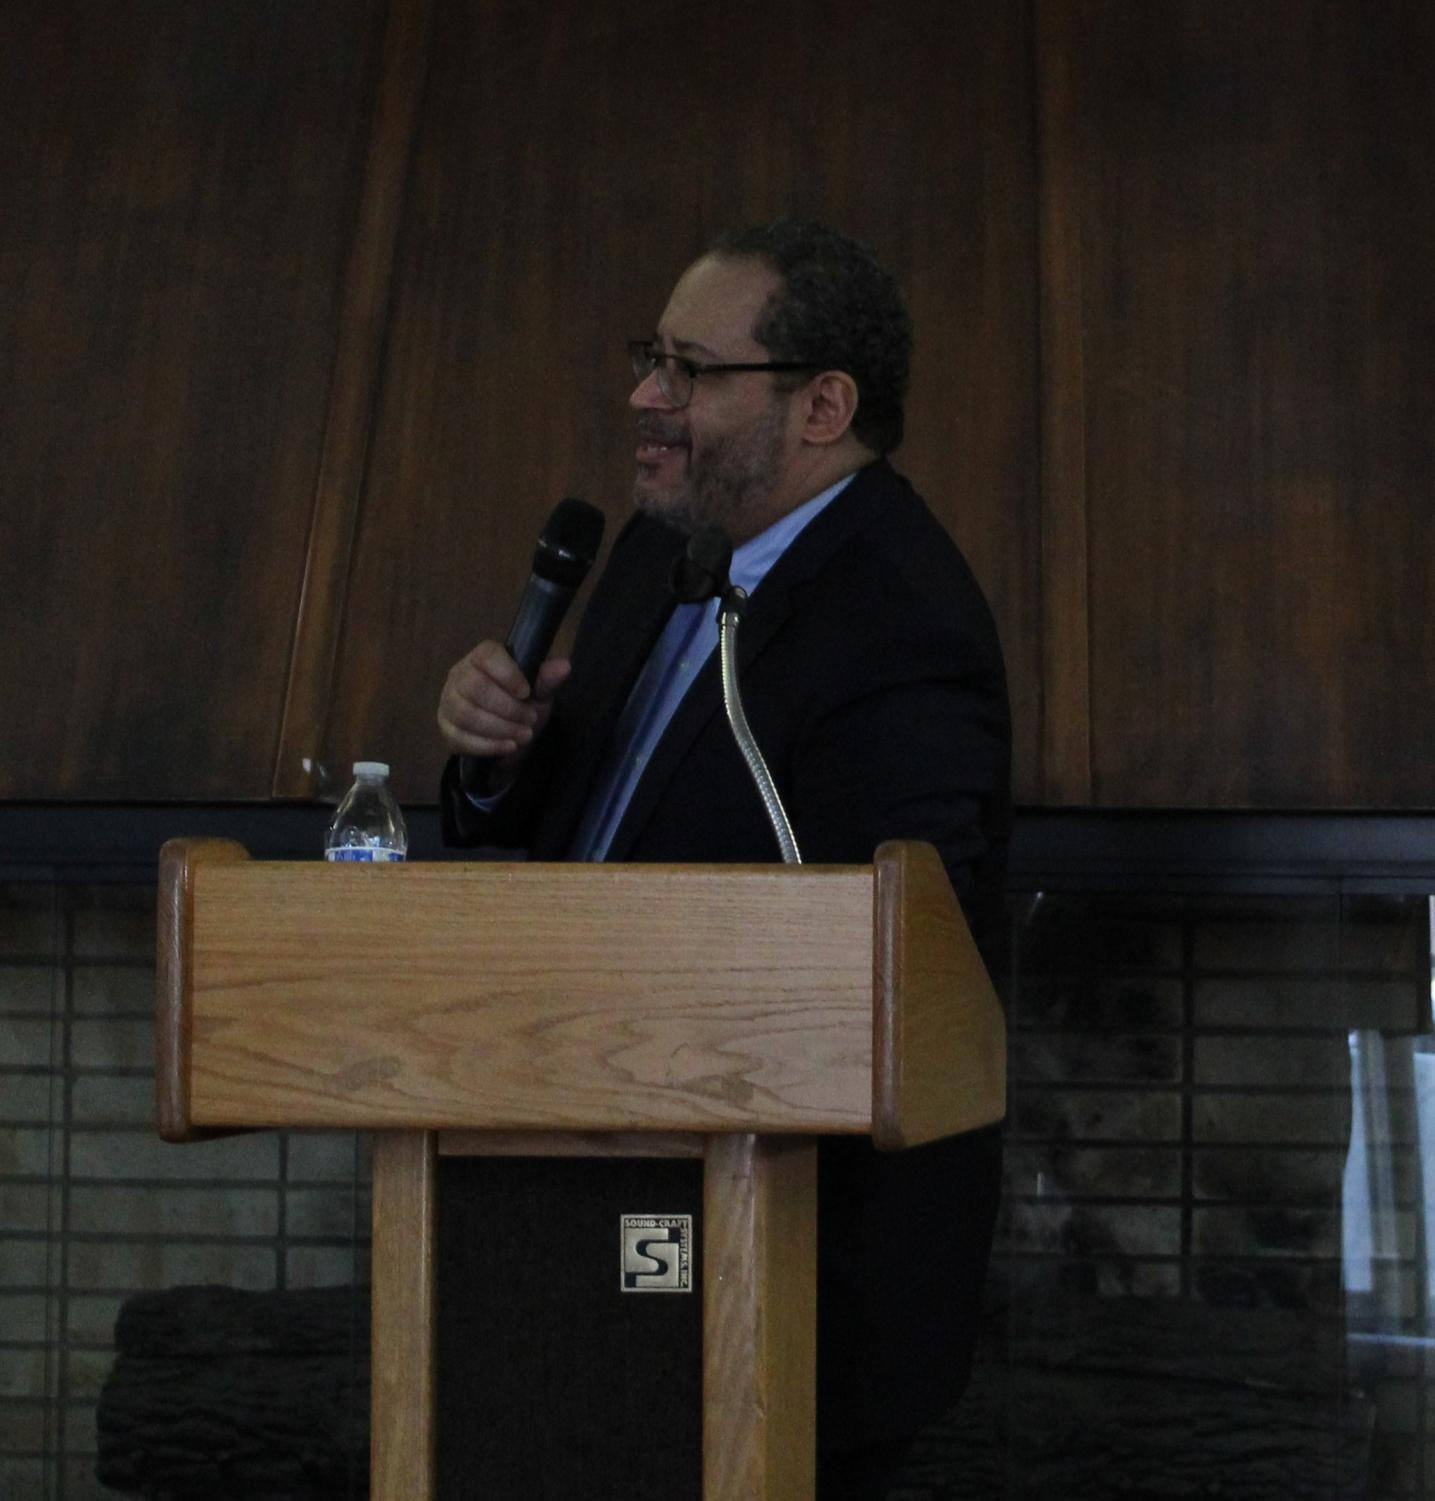 Dr. Michael Eric Dyson discussing his experience as an author.